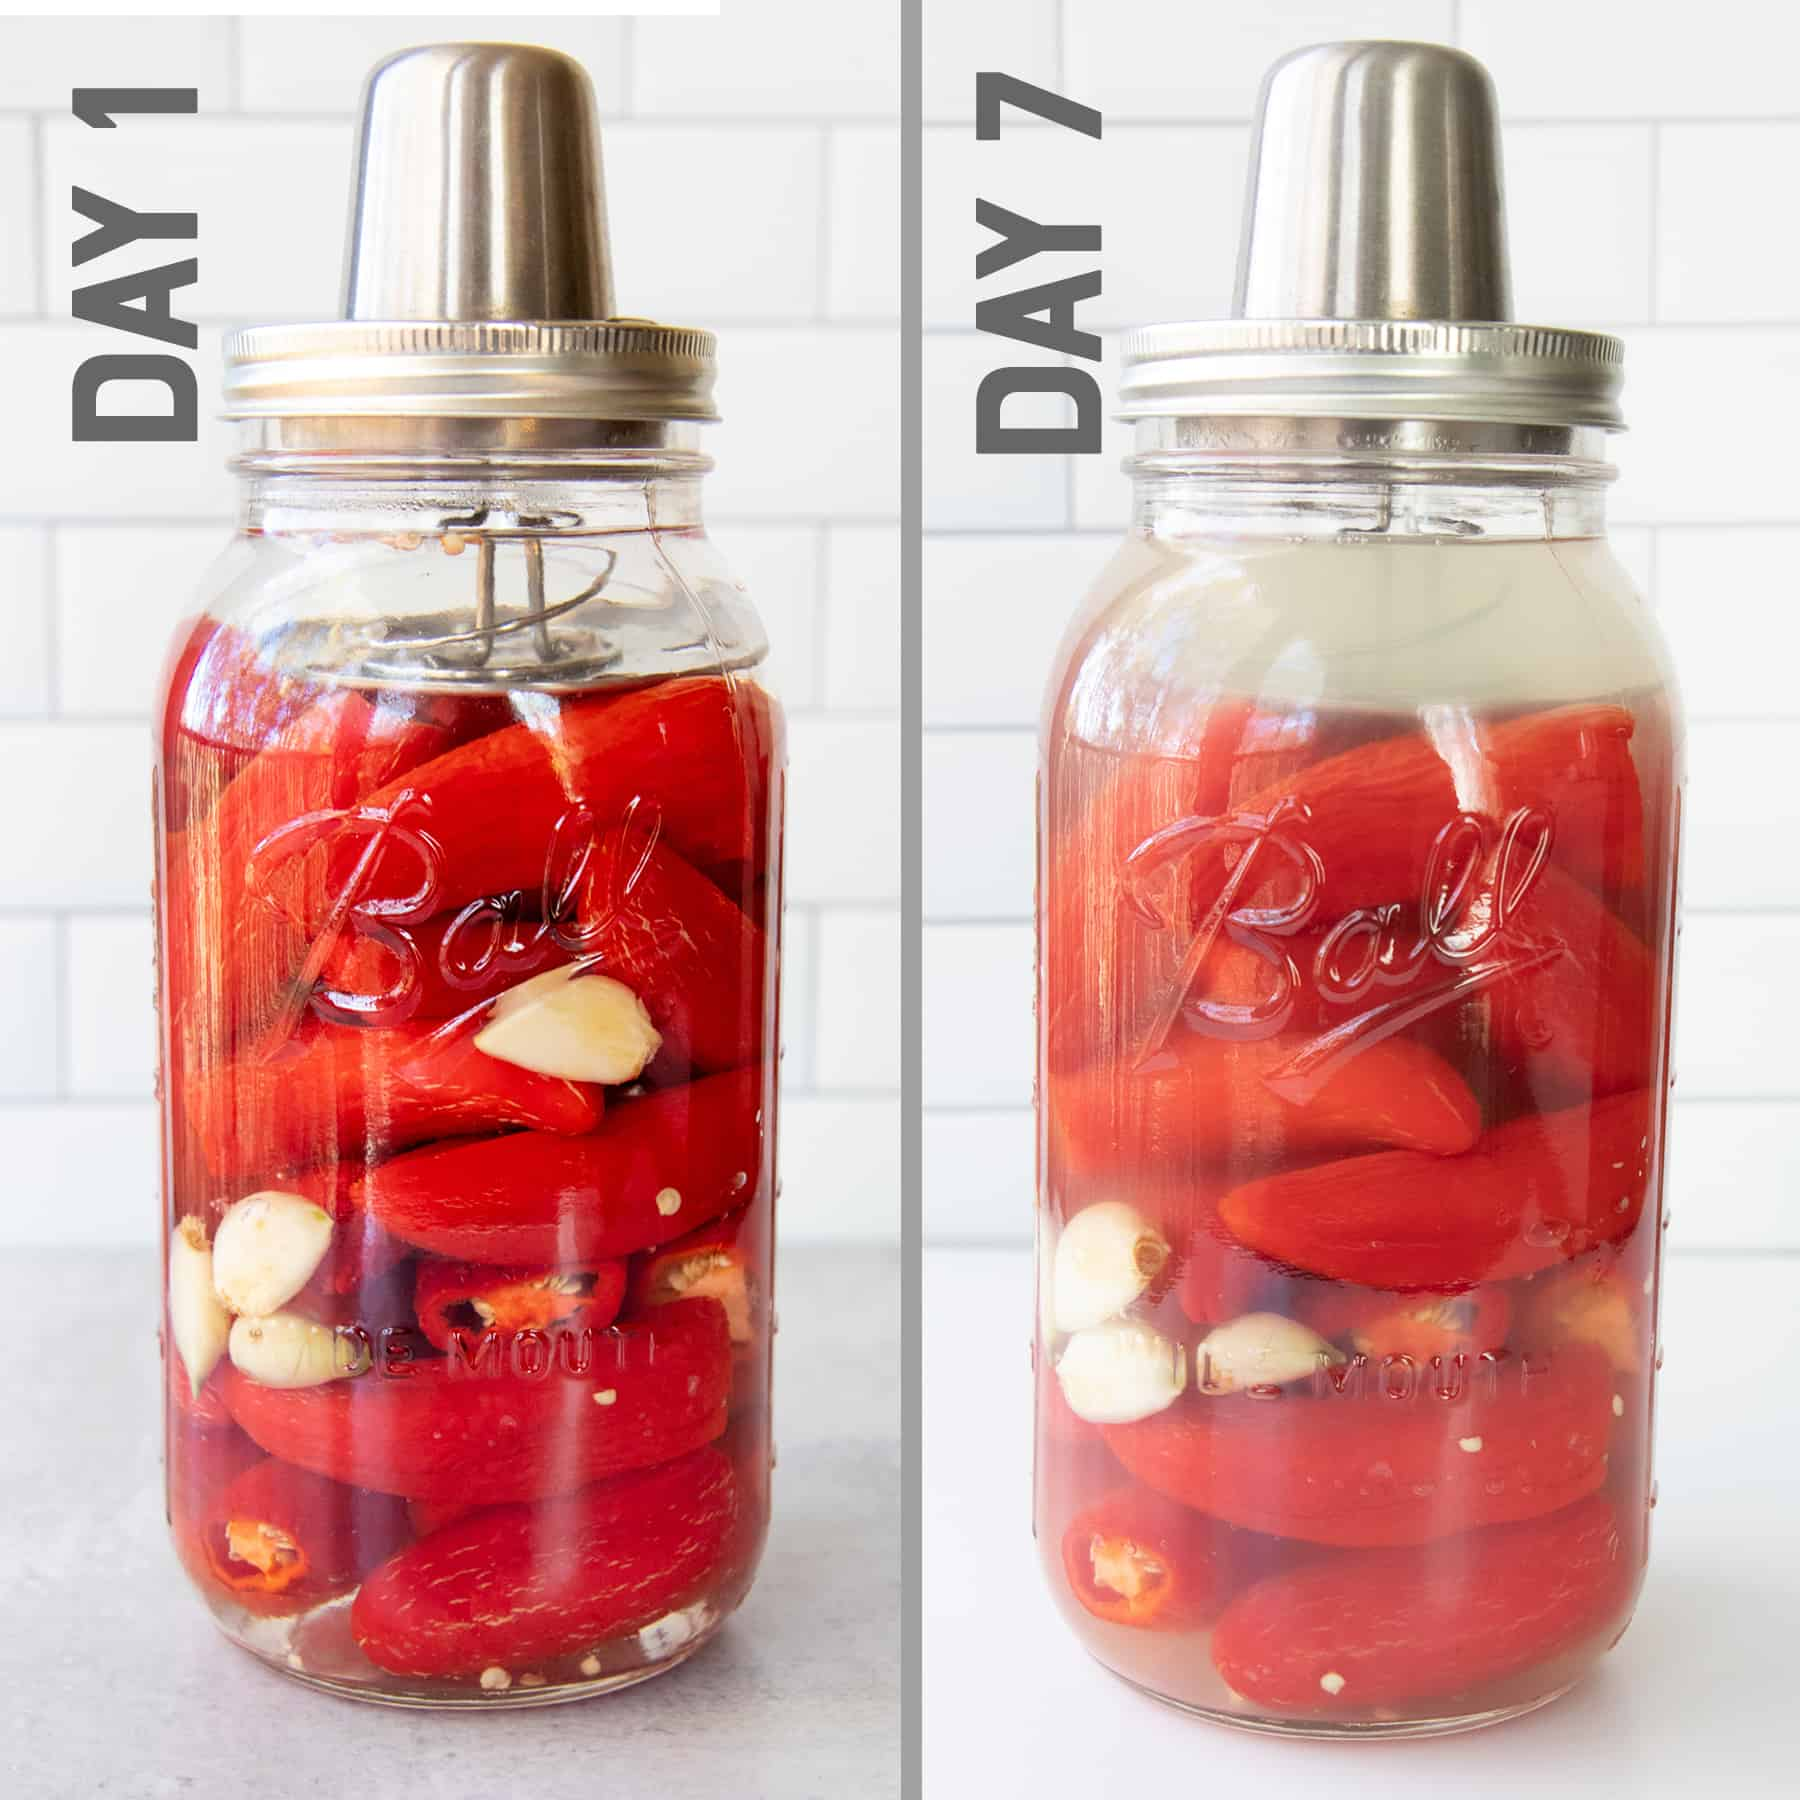 Side by side shots showing Day 1 and Day 7 of fermenting red peppers and garlic.